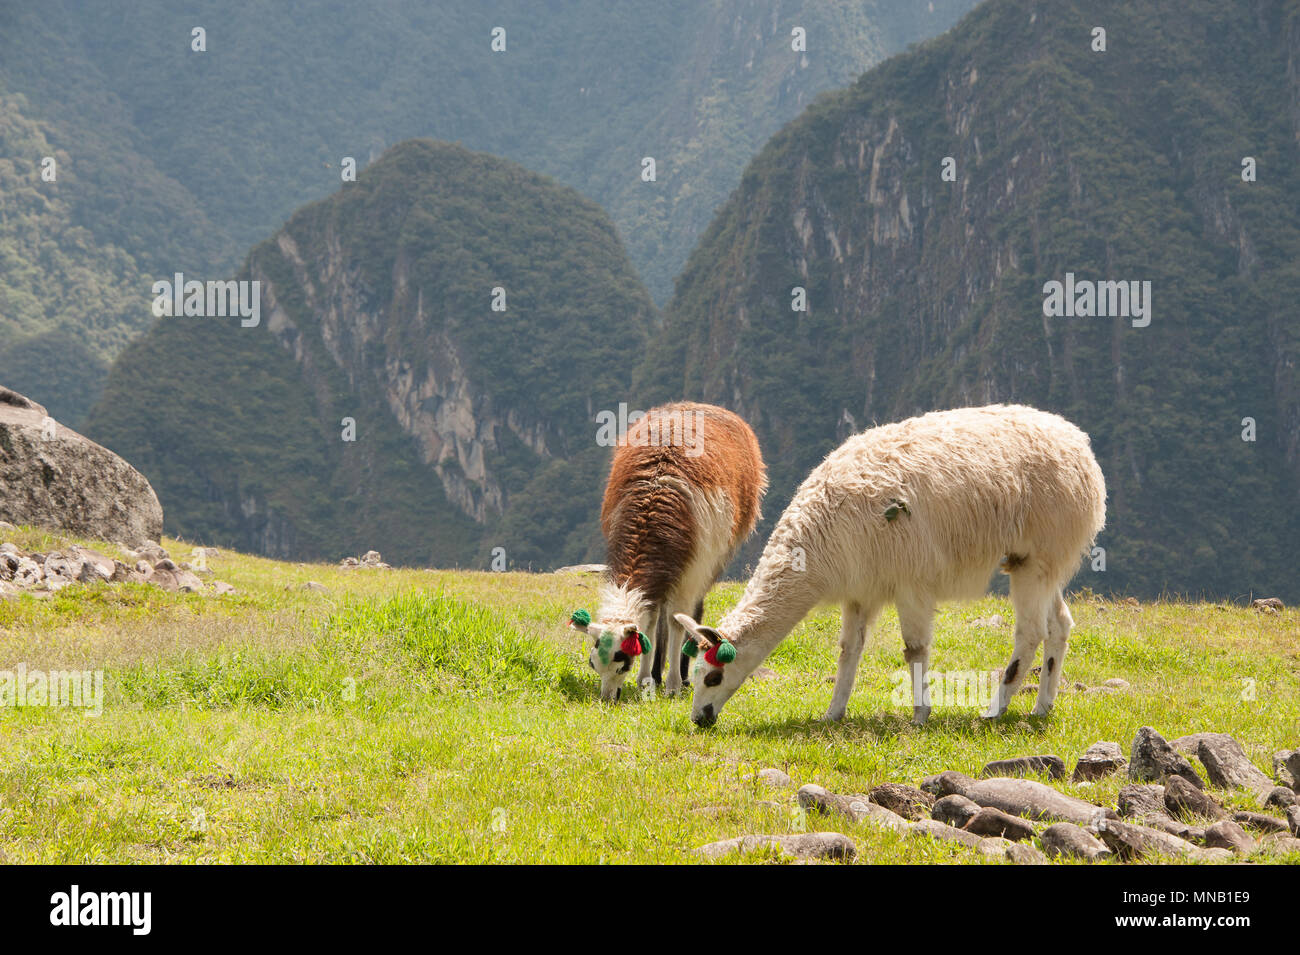 Two llamas grazing on the  amazing landscape of Machu Picchu in Peru - Stock Image